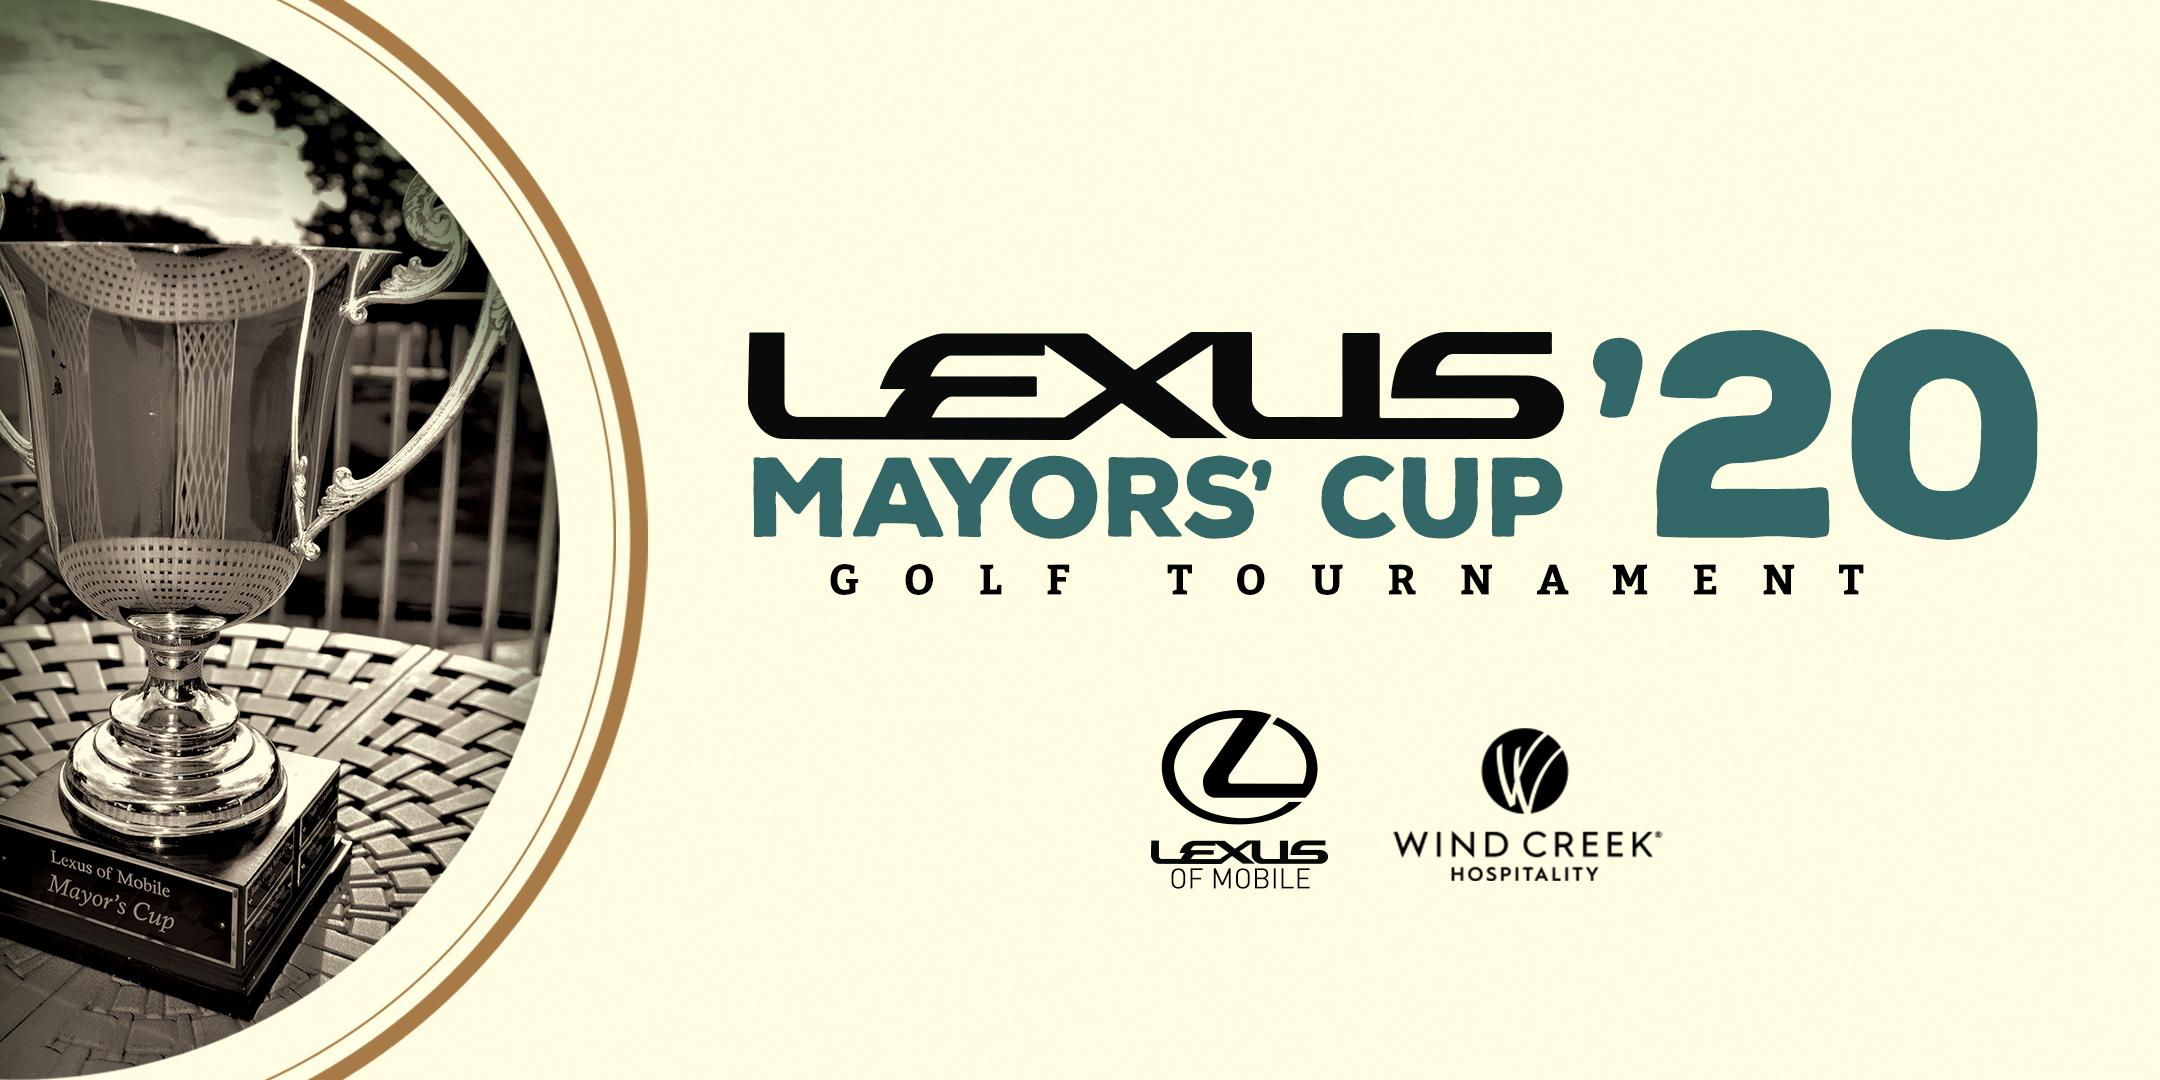 2020 Mayors' Cup Golf Tournament